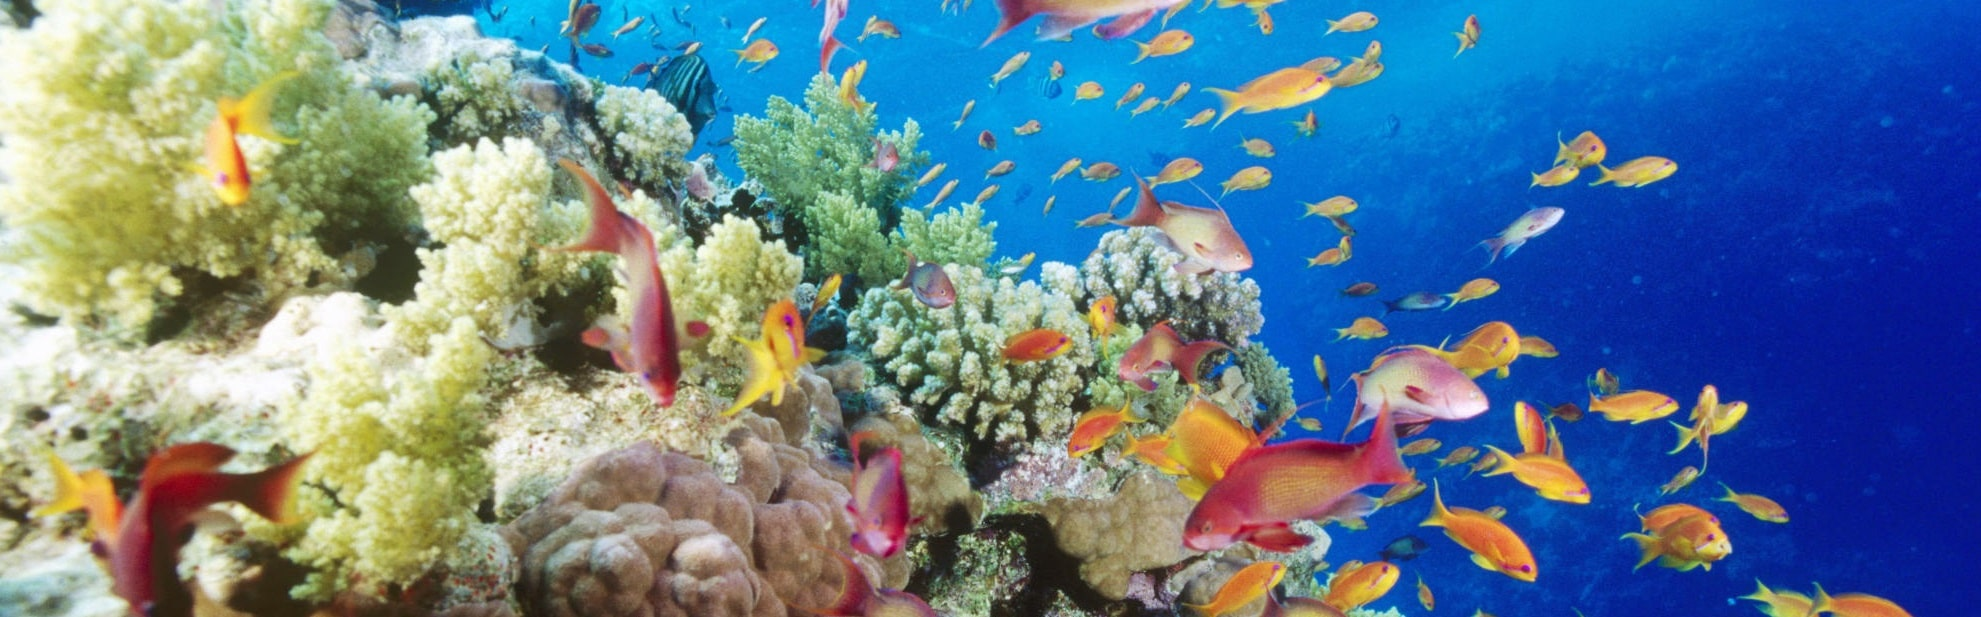 Particle Analysis in Marine Biology